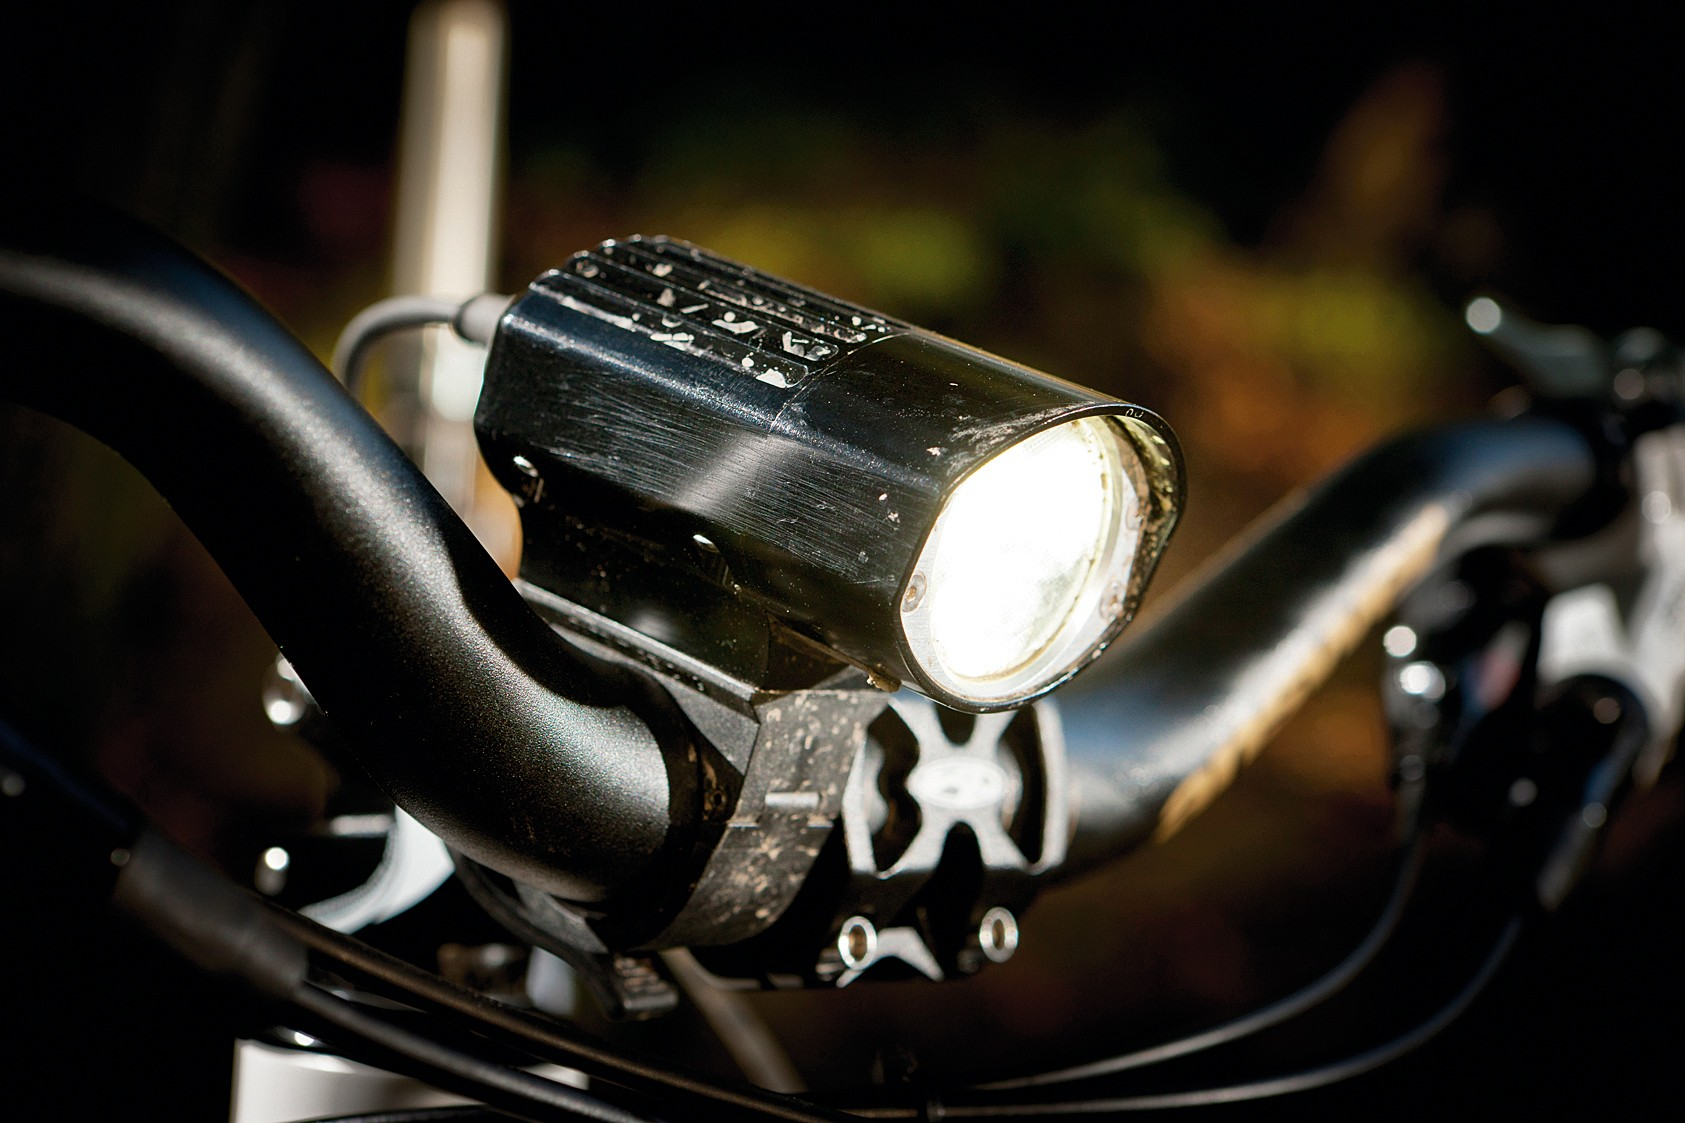 Troute Darkness Dominator front light